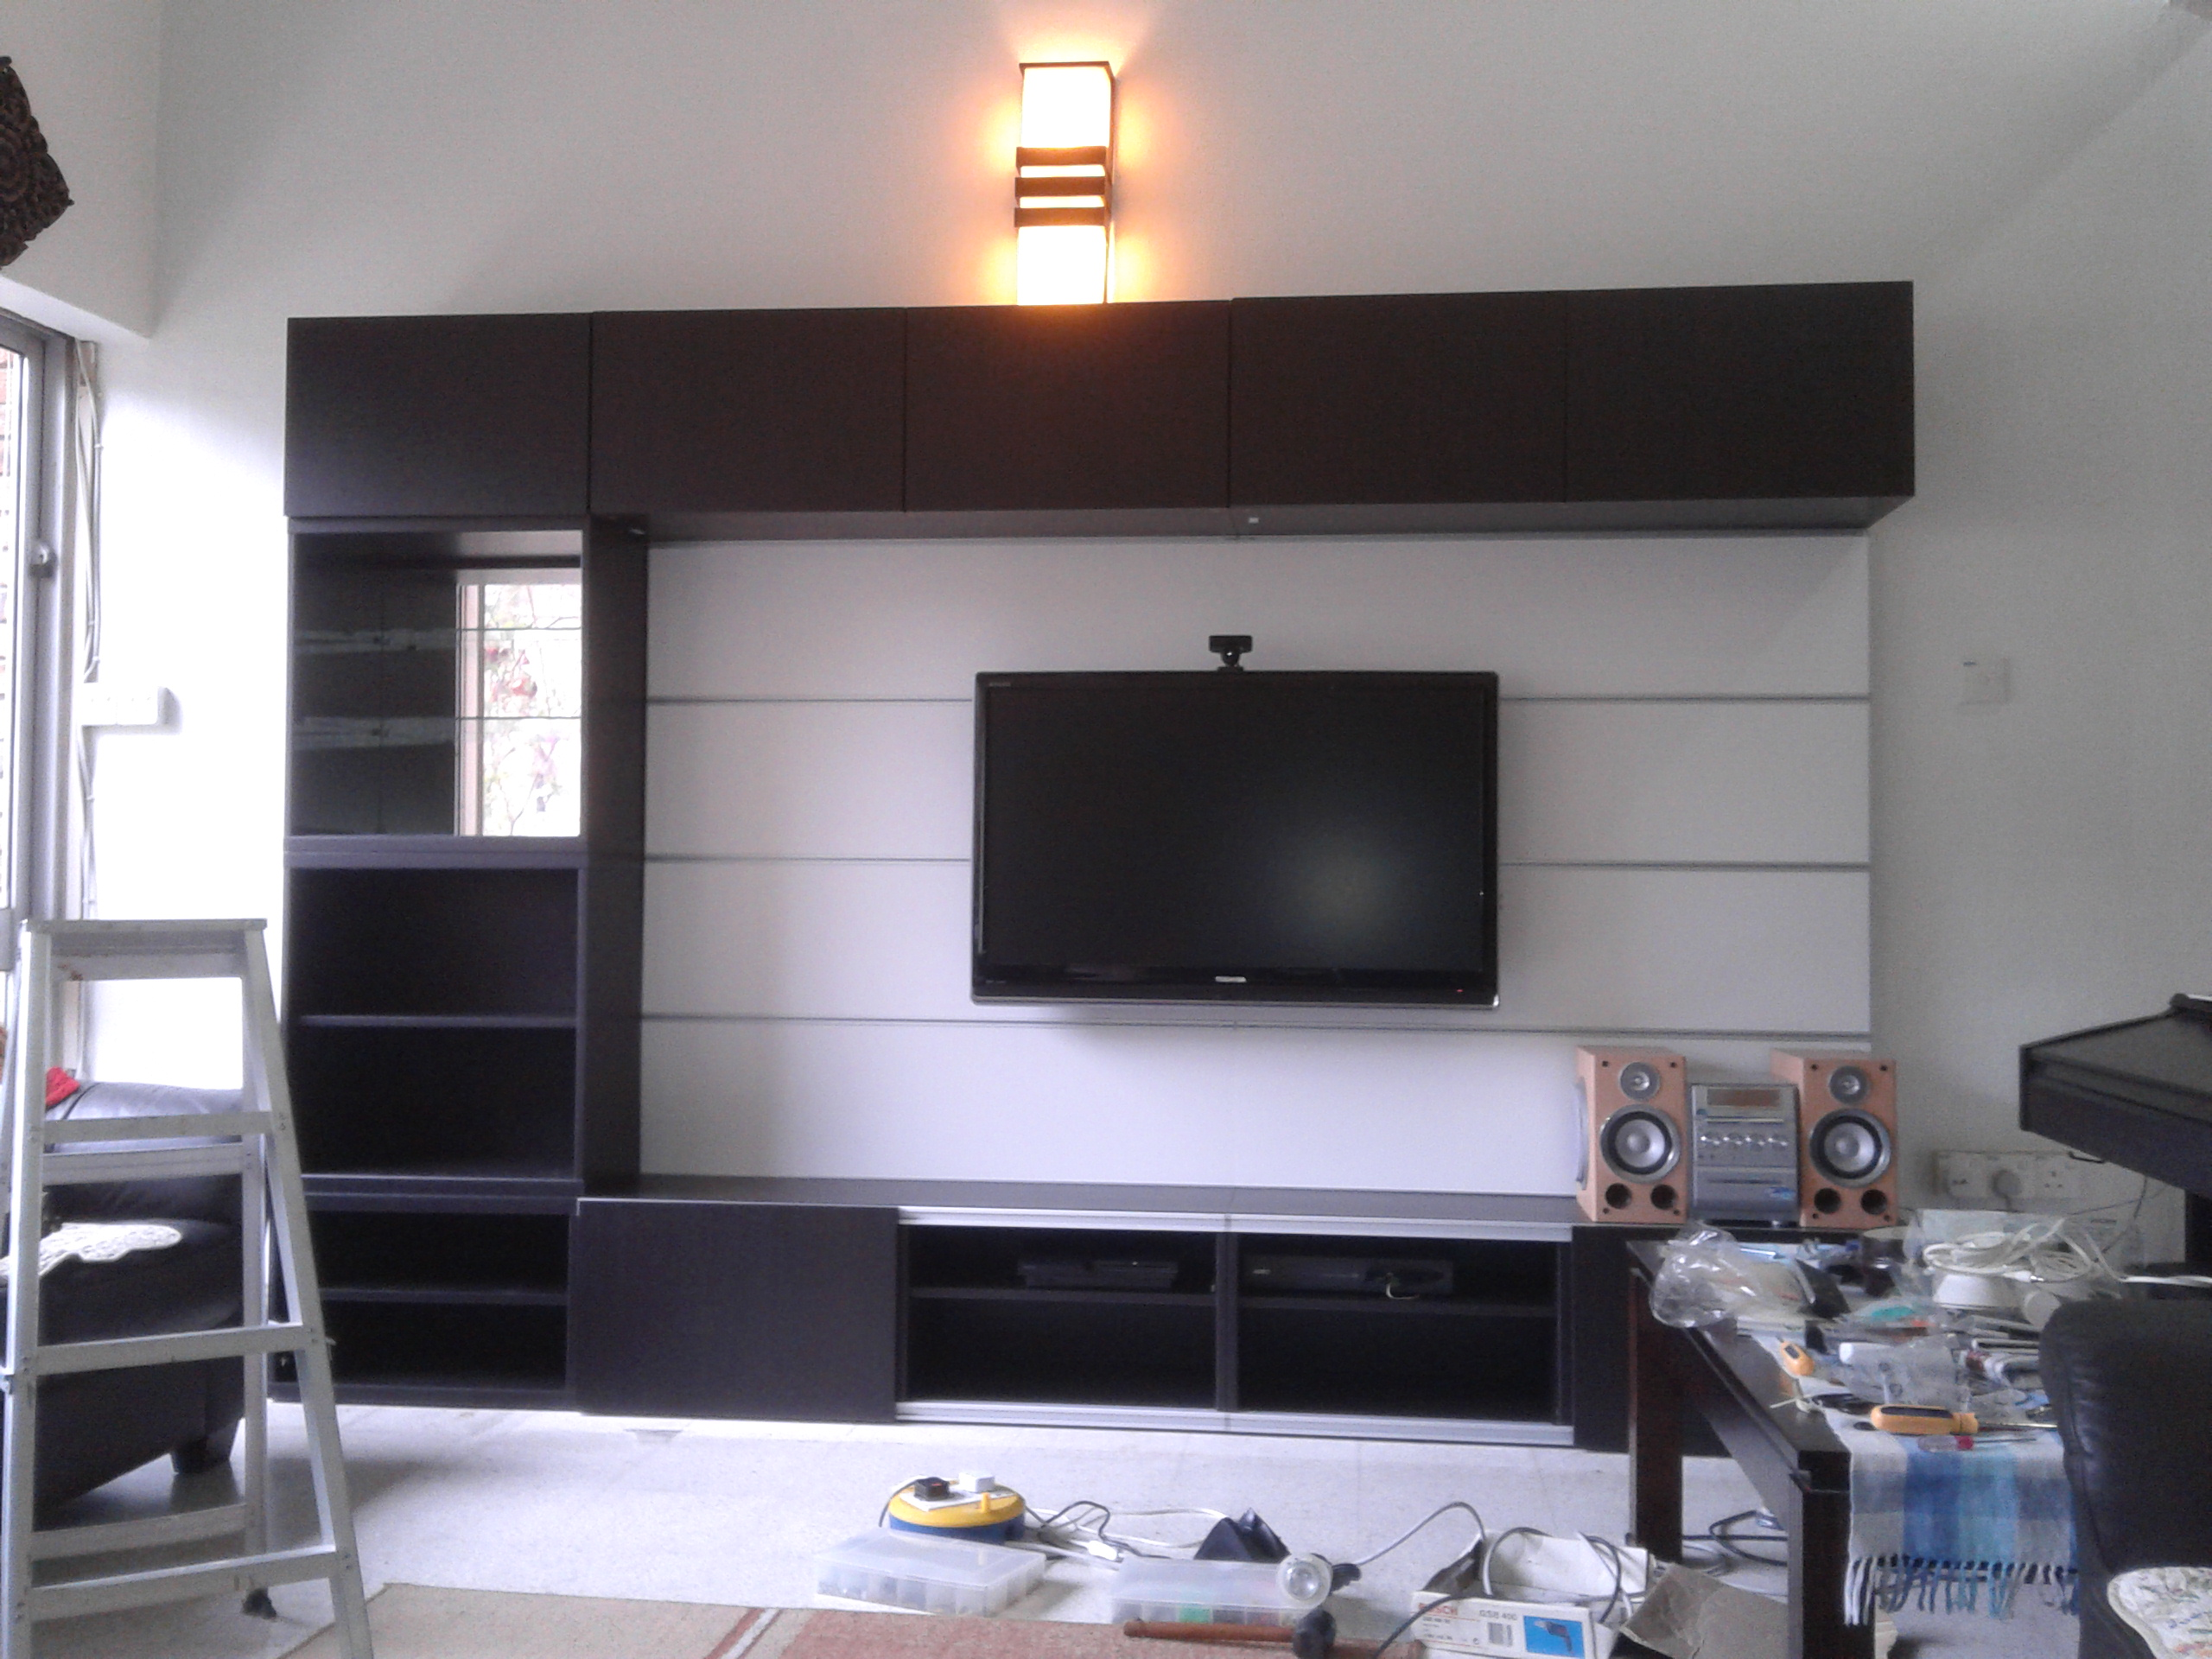 Diy ikea tv media furniture project part 3 sherren lee Ikea media room ideas